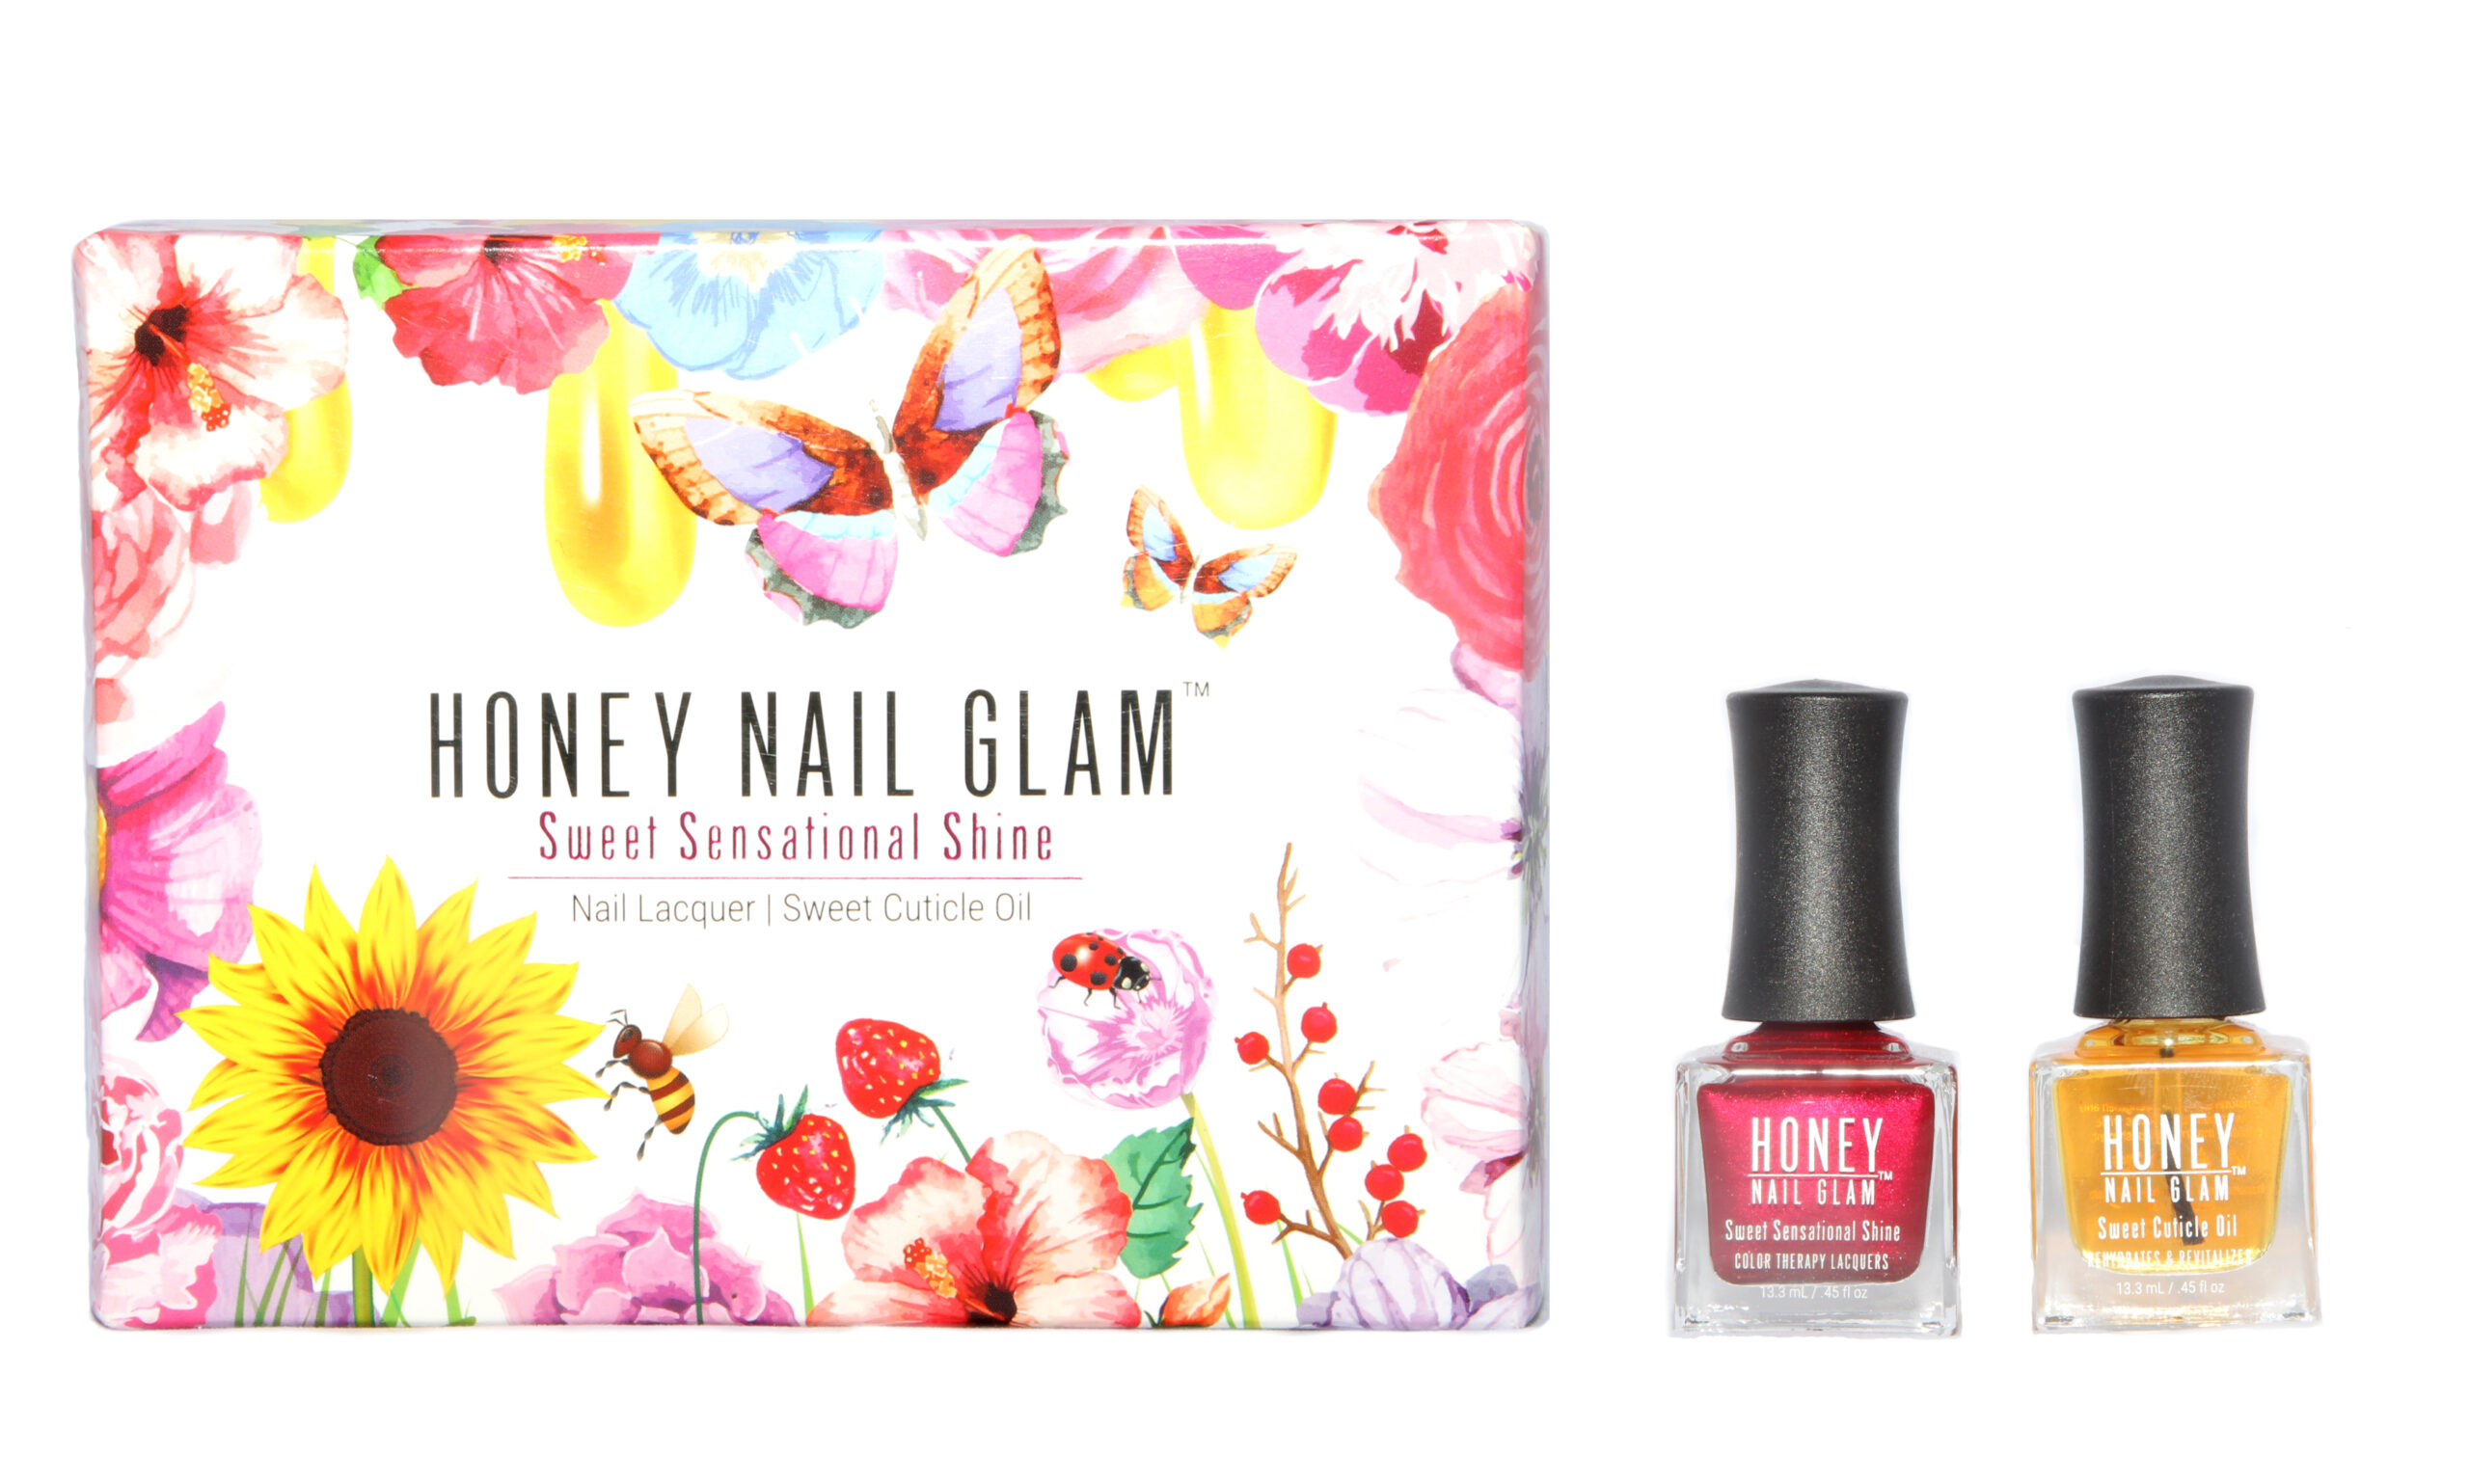 Honey Nail Glam, nails, body care